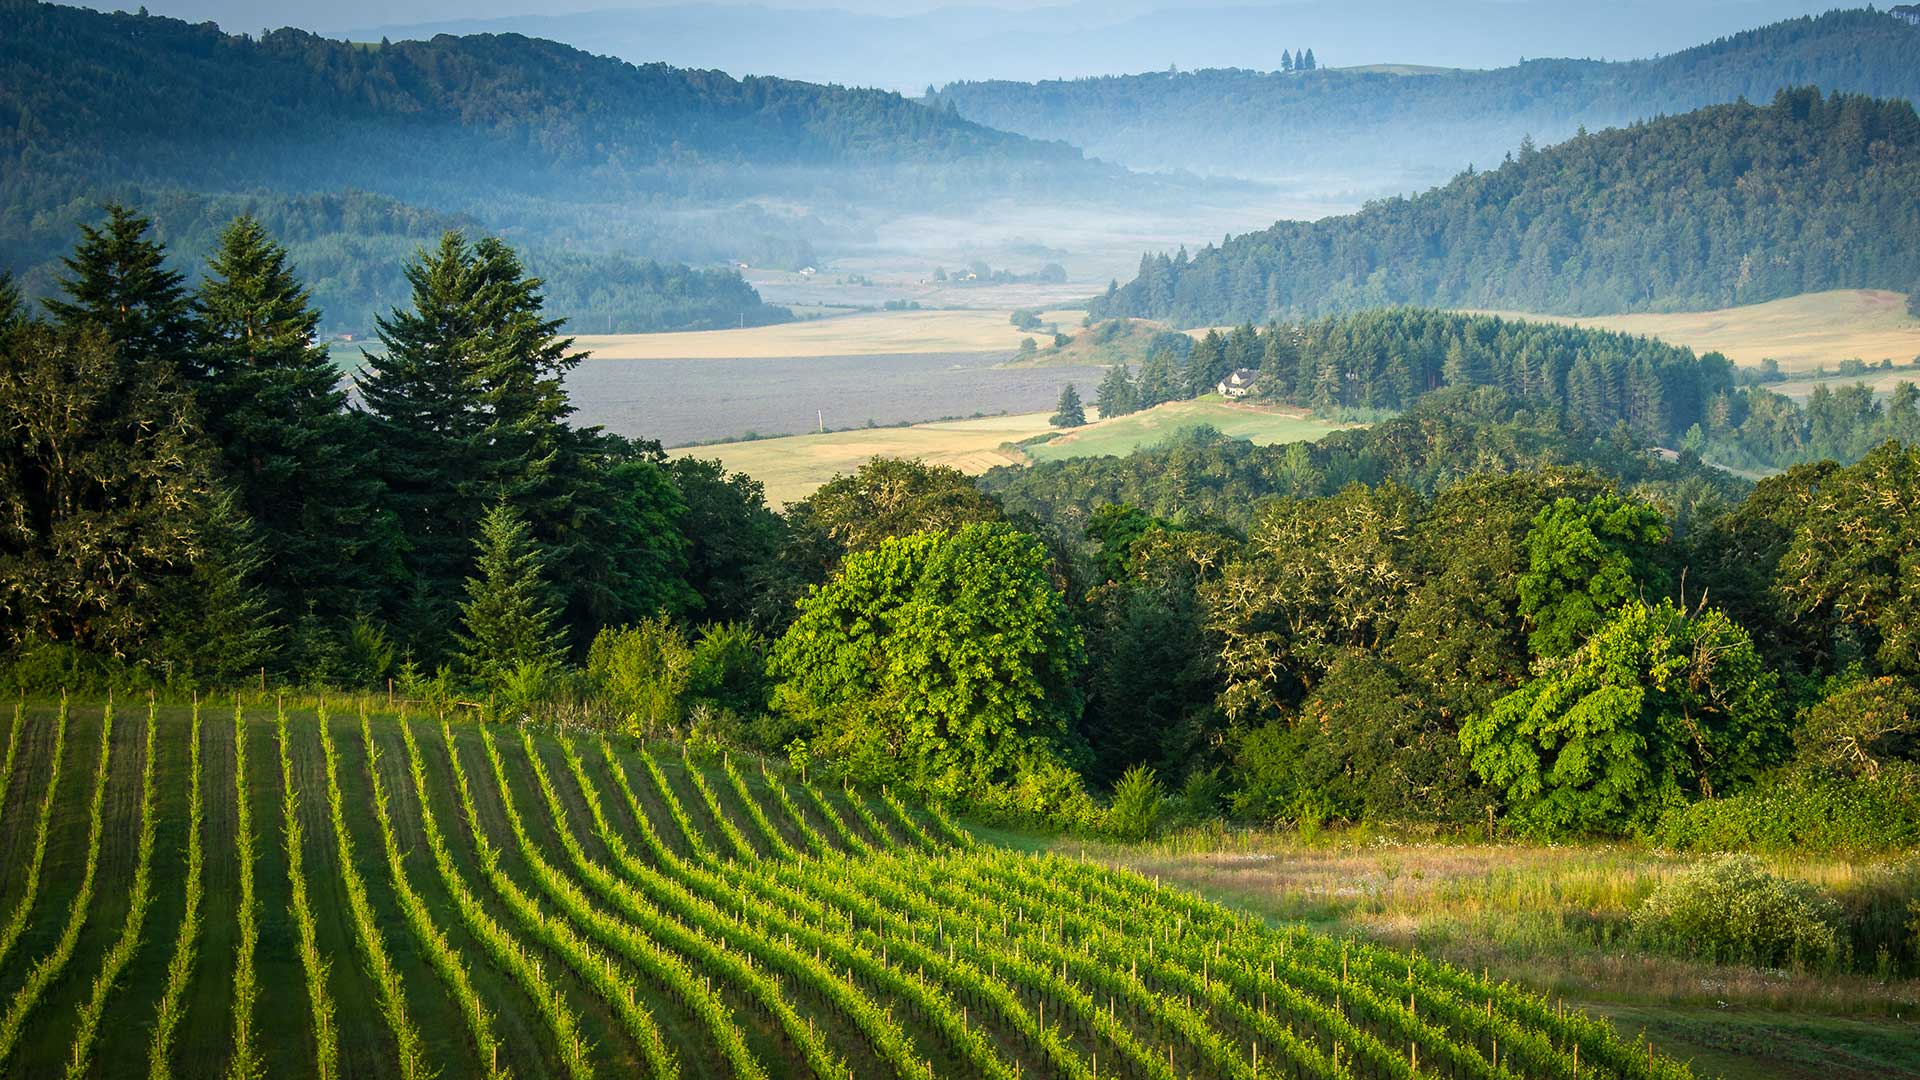 Oregon Wine Country AVA Vineyard and Winery